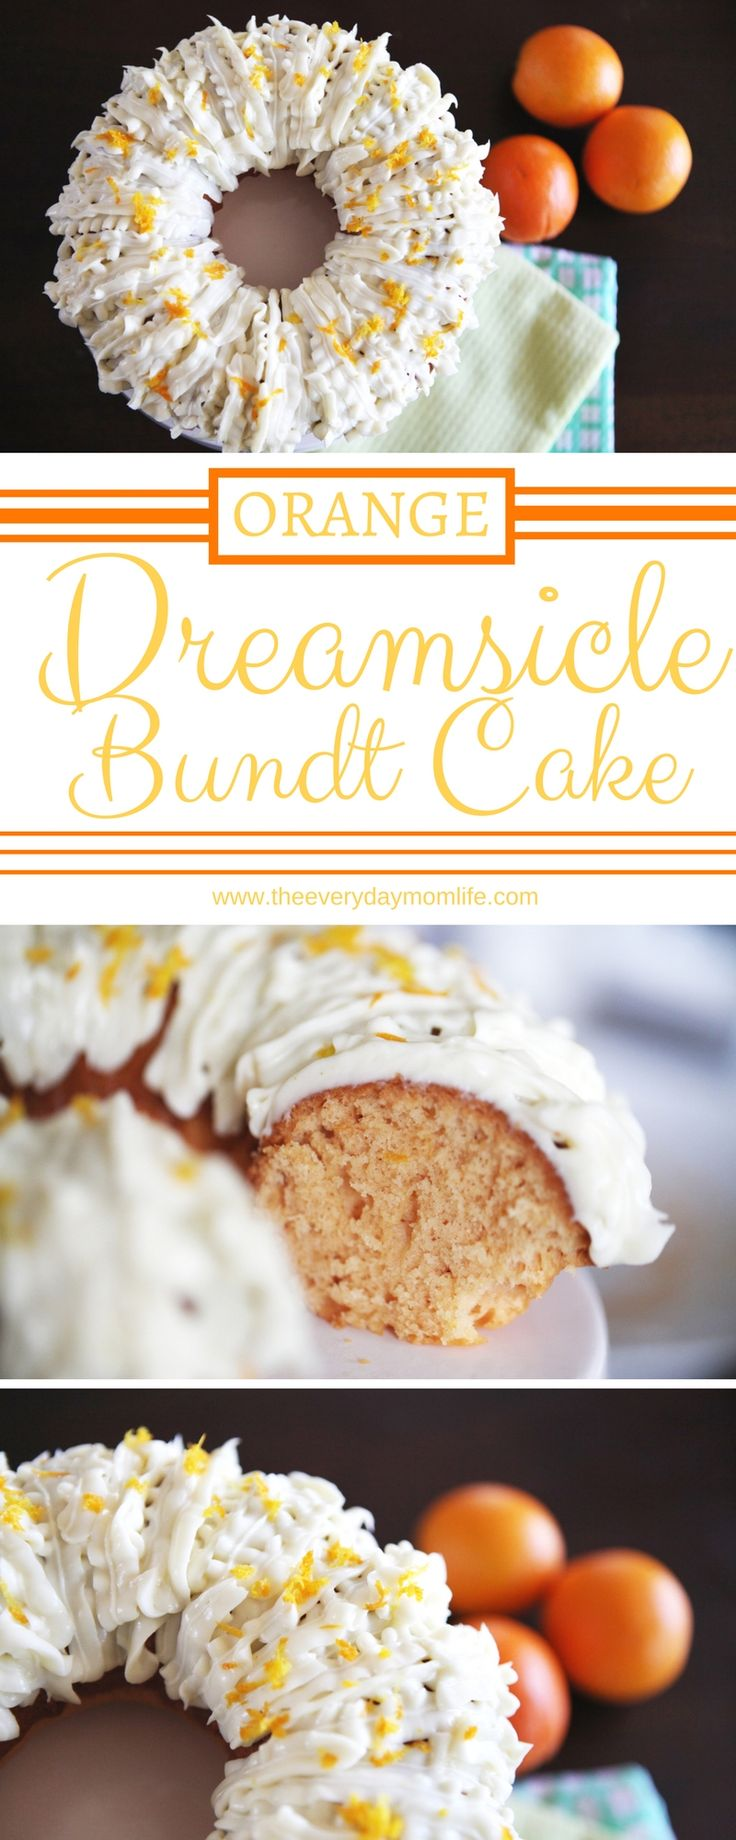 The perfect spring cake recipe! Orange Dreamsicle Cake With Vanilla Cream Cheese Frosting. Refreshing, bright and light this orange cake is great for parties, Easter or just because you want to bake something yummy!